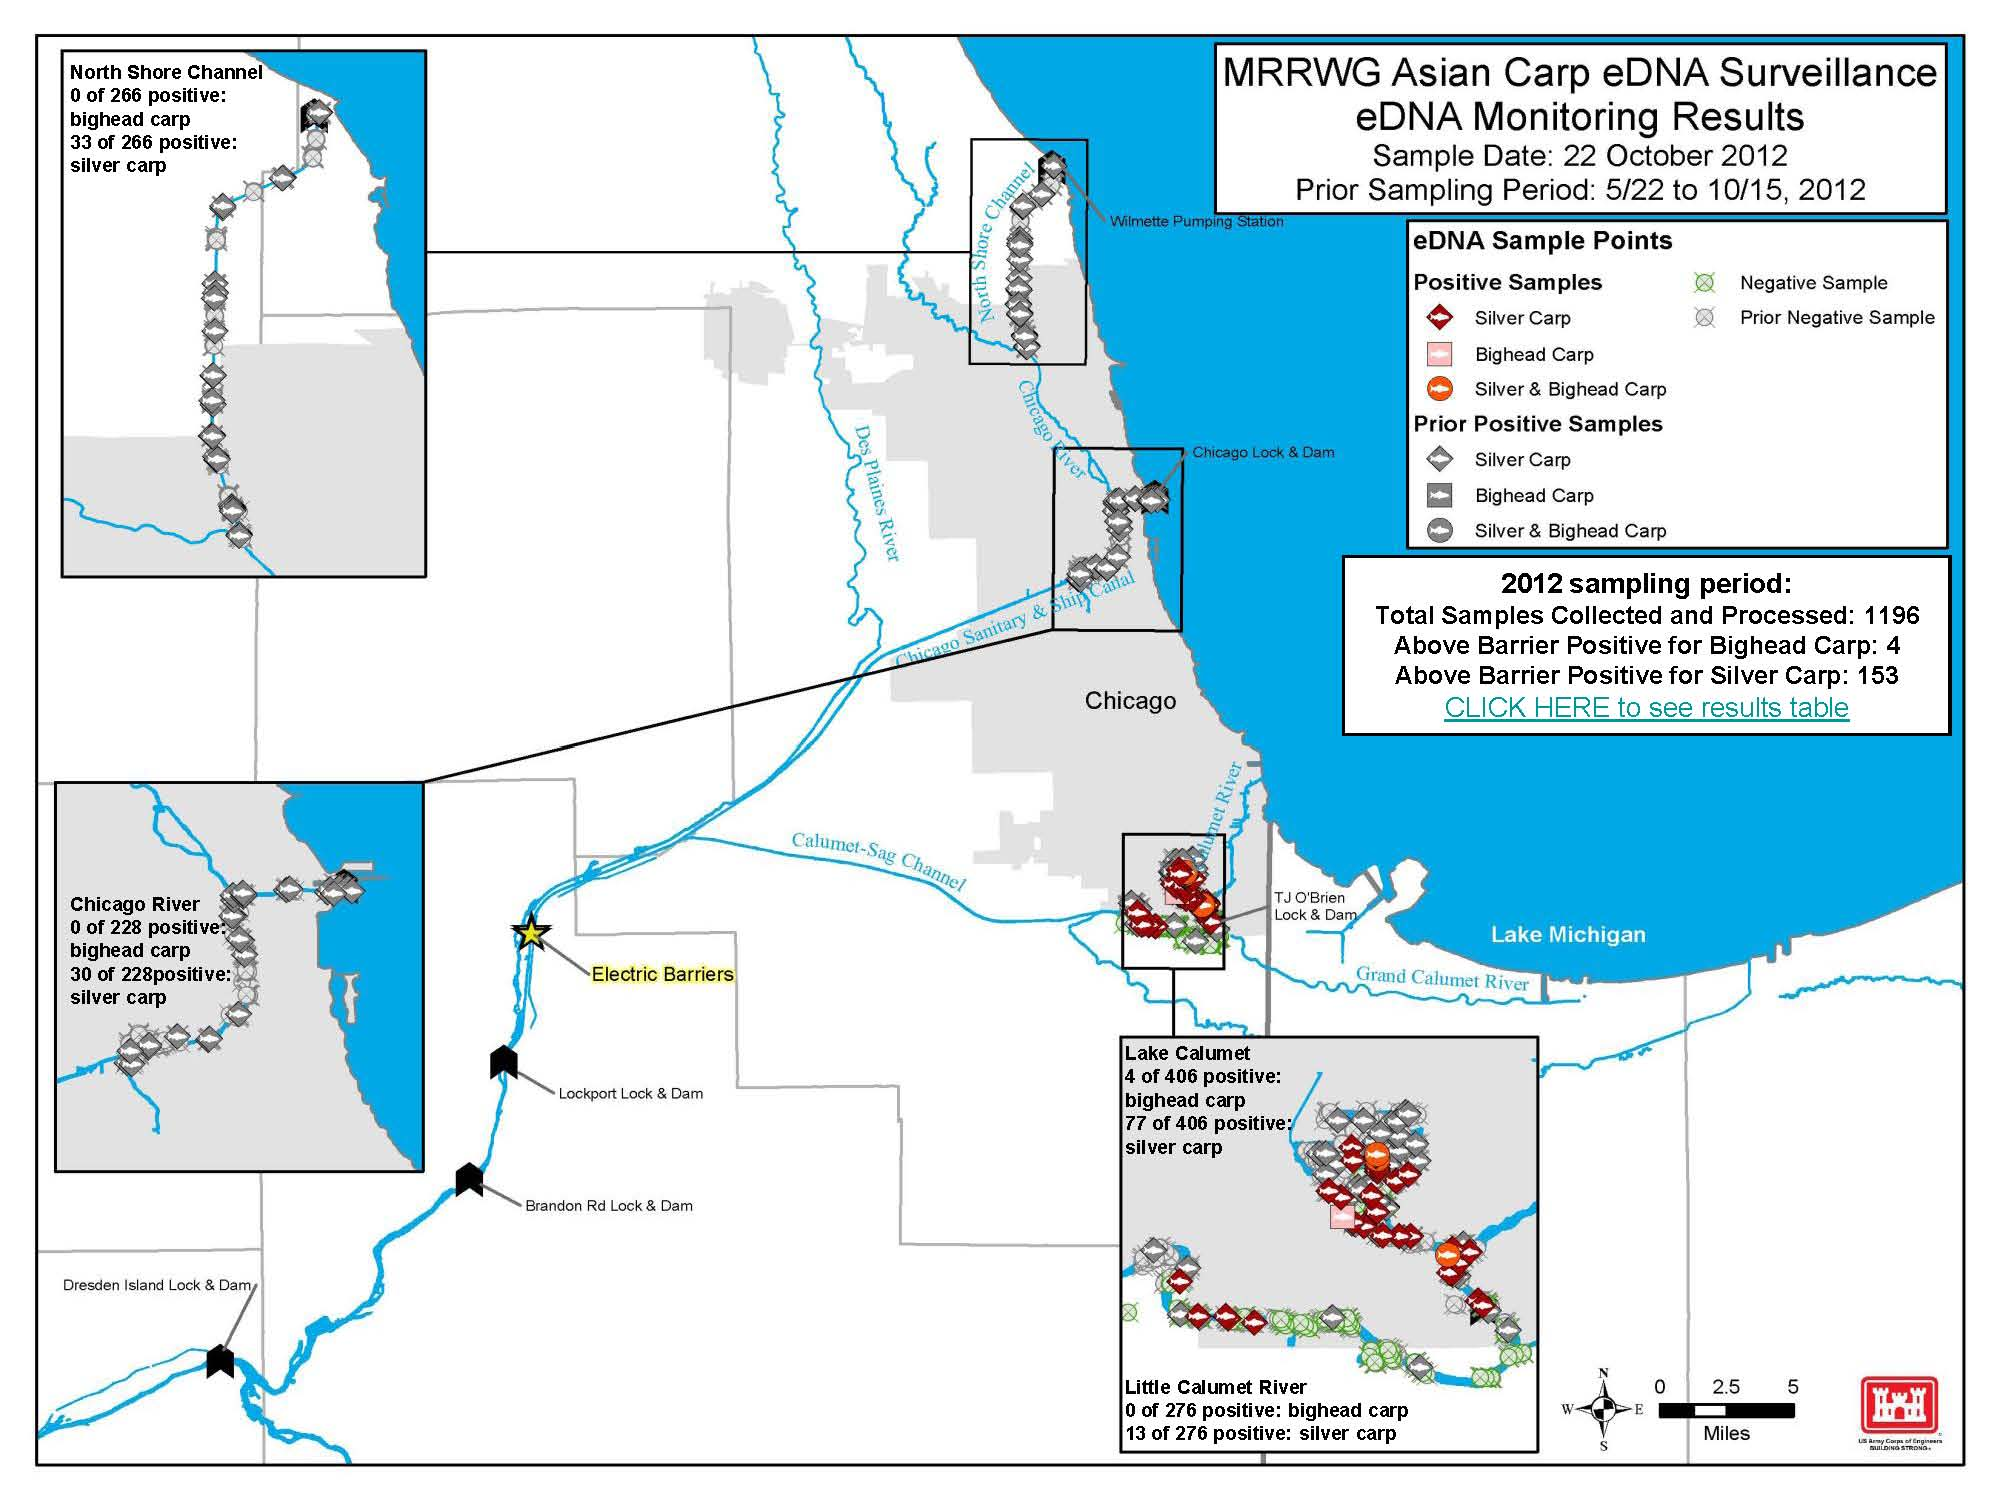 EDNA Monitoring - Chicago map river